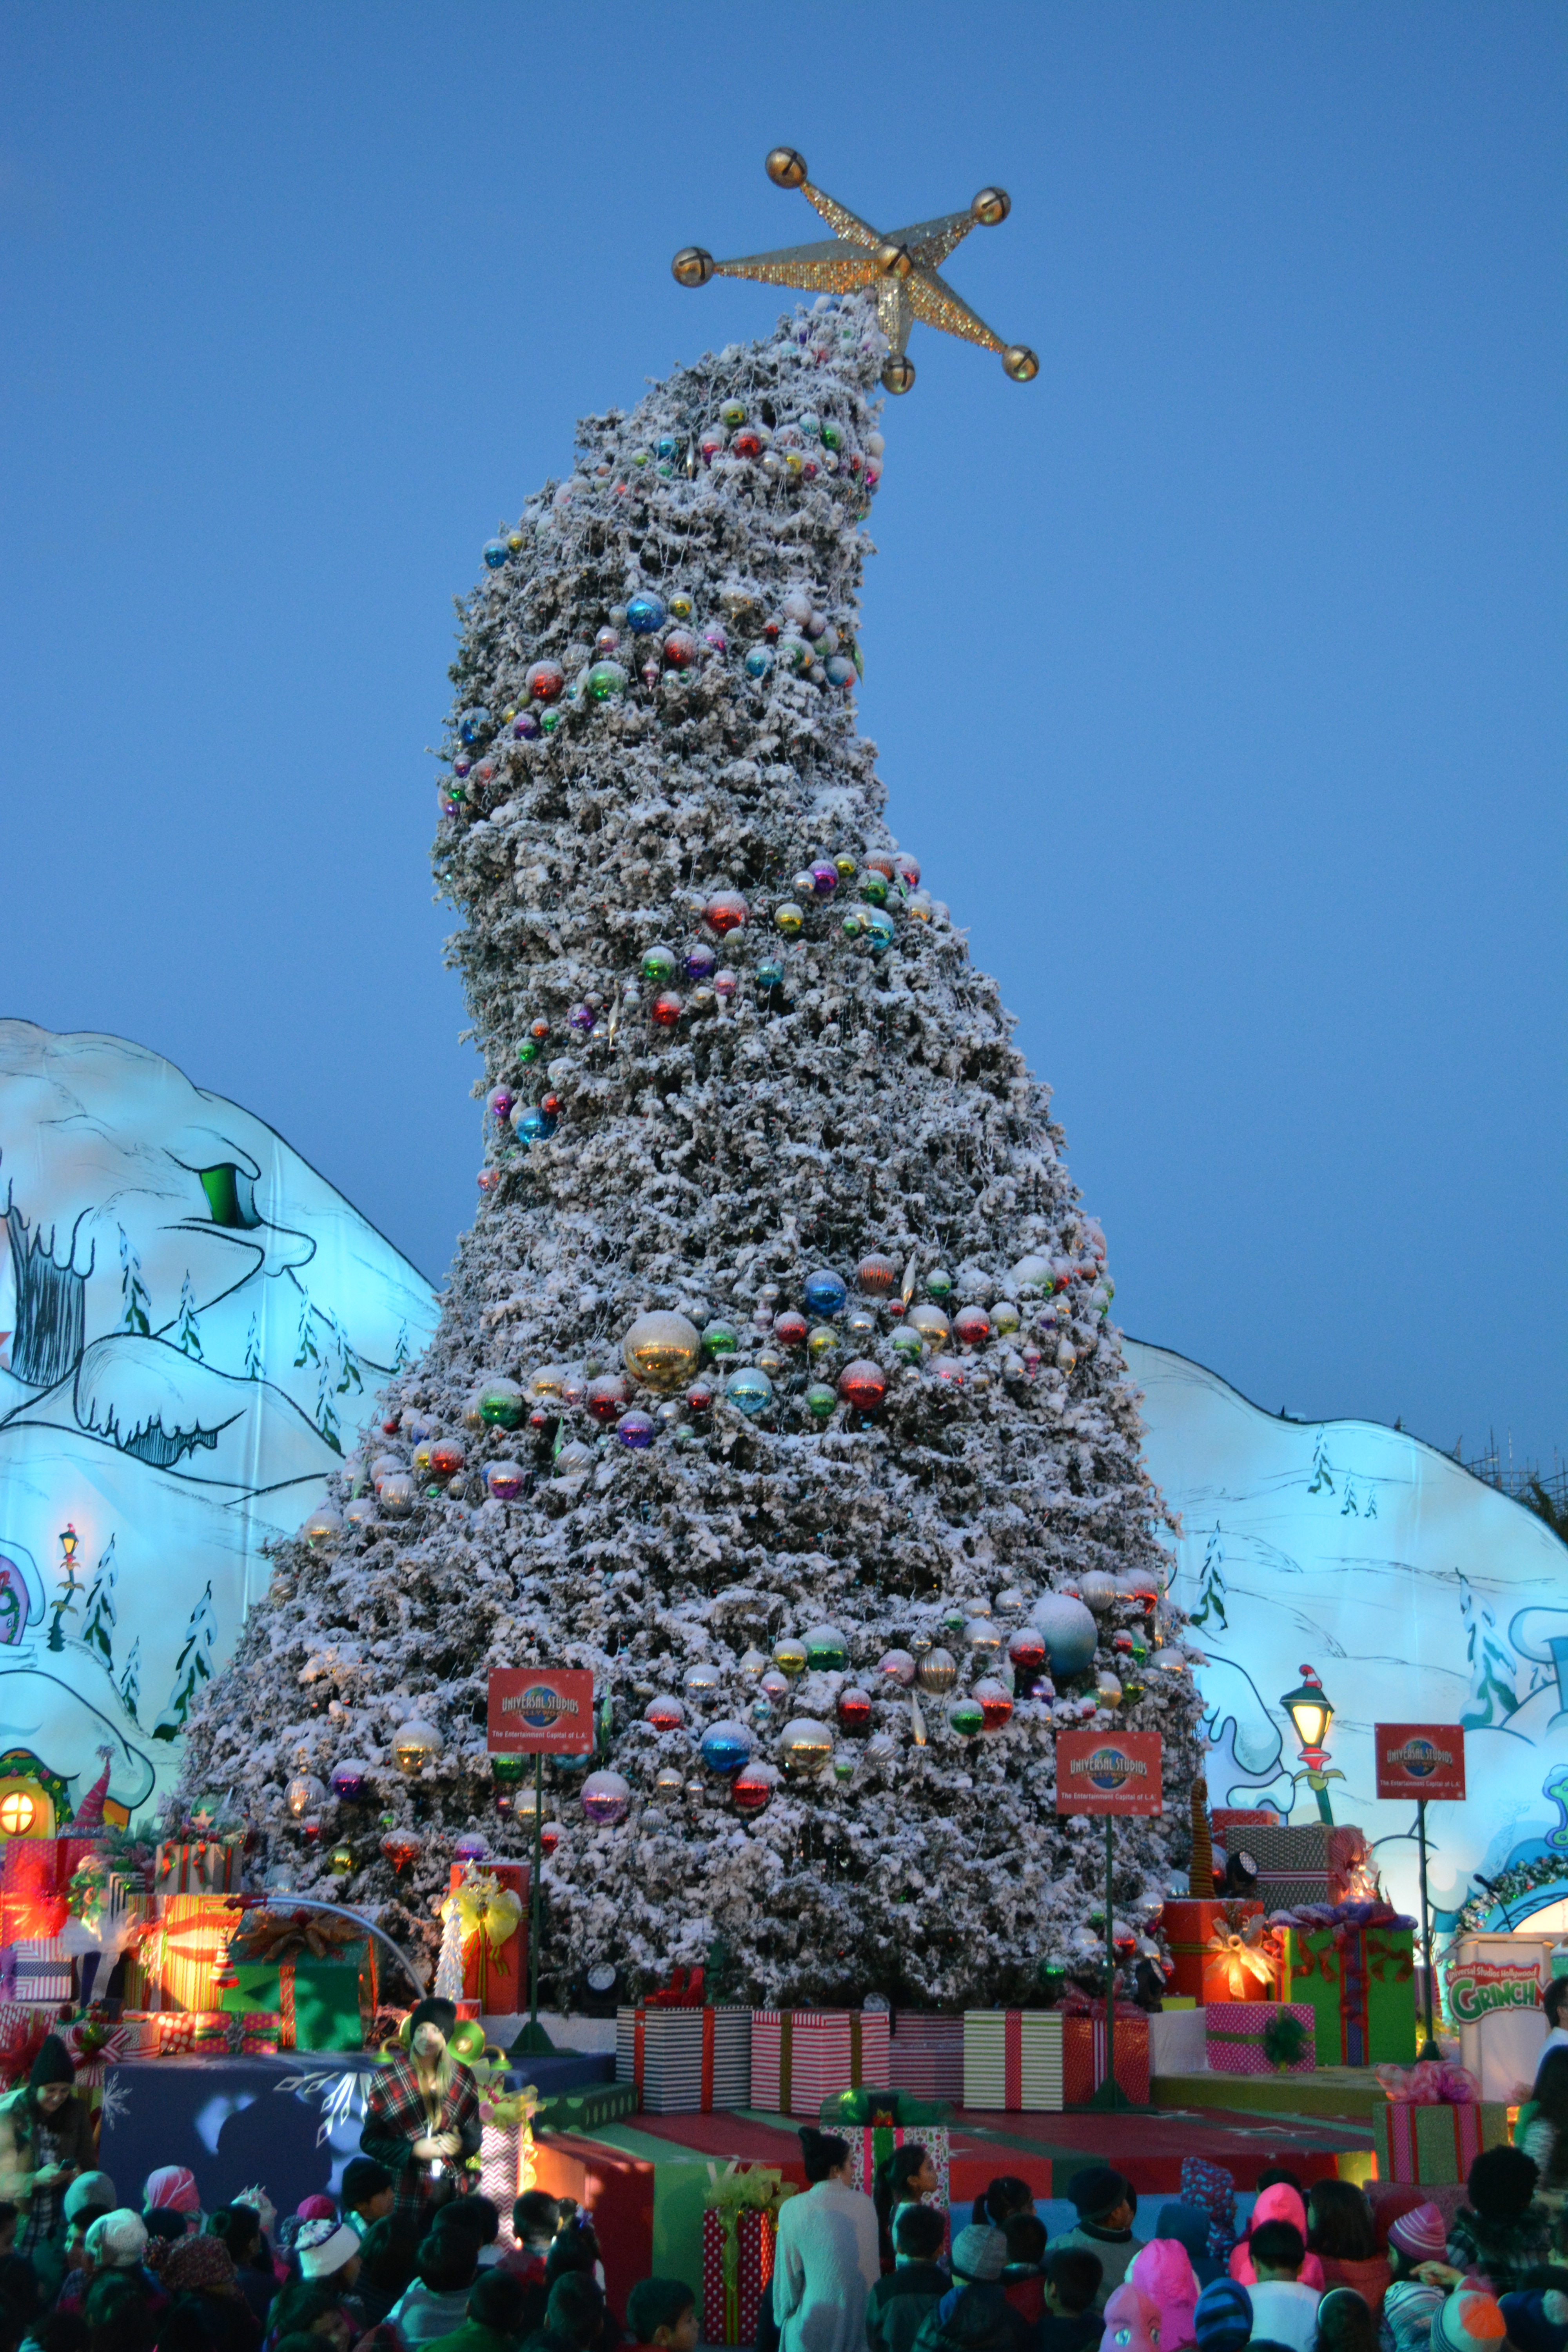 ti exclusive 20 days of grinchmas at universal studios hollywood - When Does Universal Studios Hollywood Decorate For Christmas